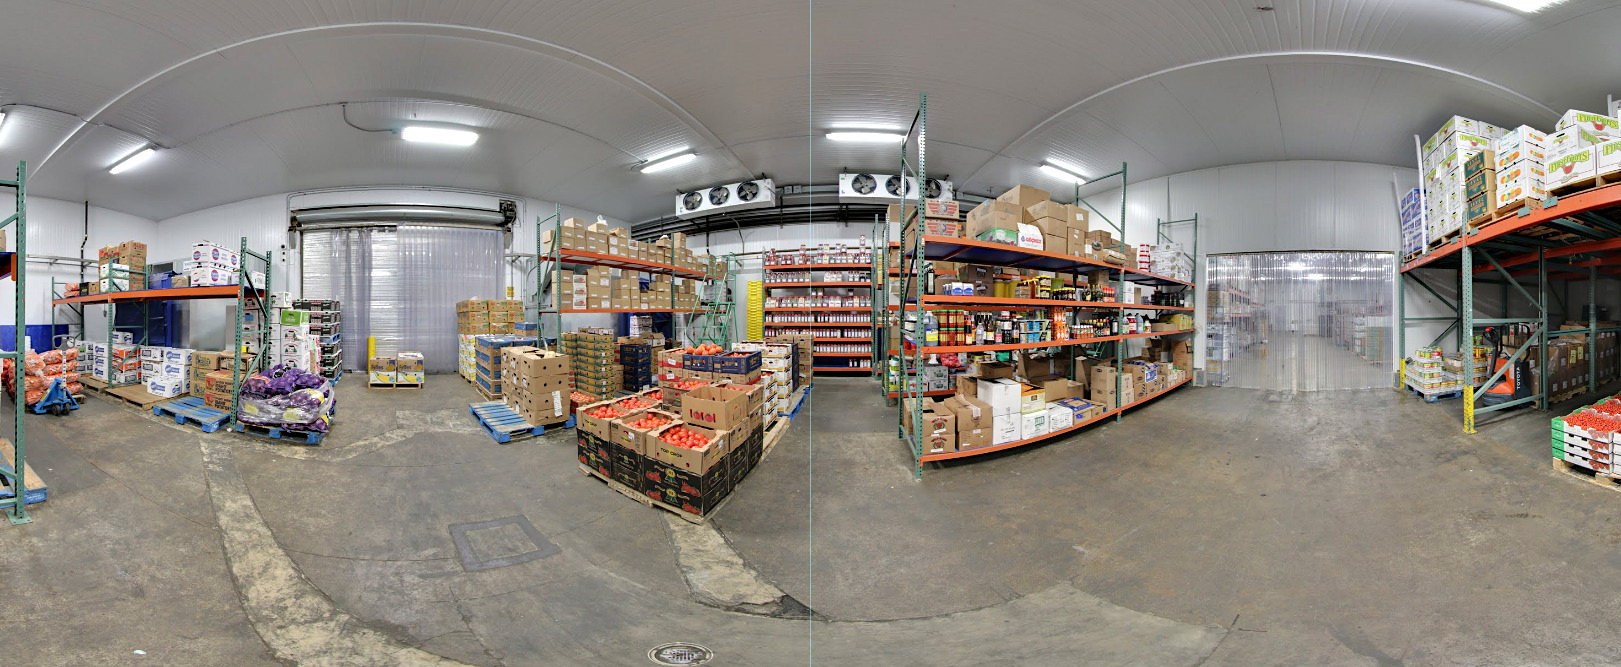 7 days a week, 363 days a year The Berry Man, Inc. is a wholesale produce distributor supplying restaurants, resorts, institutions, caterers, and markets from Big Sur to Malibu… The Berry Man sells over 2600 items to more than 1200 foodservice establishments throughout California.